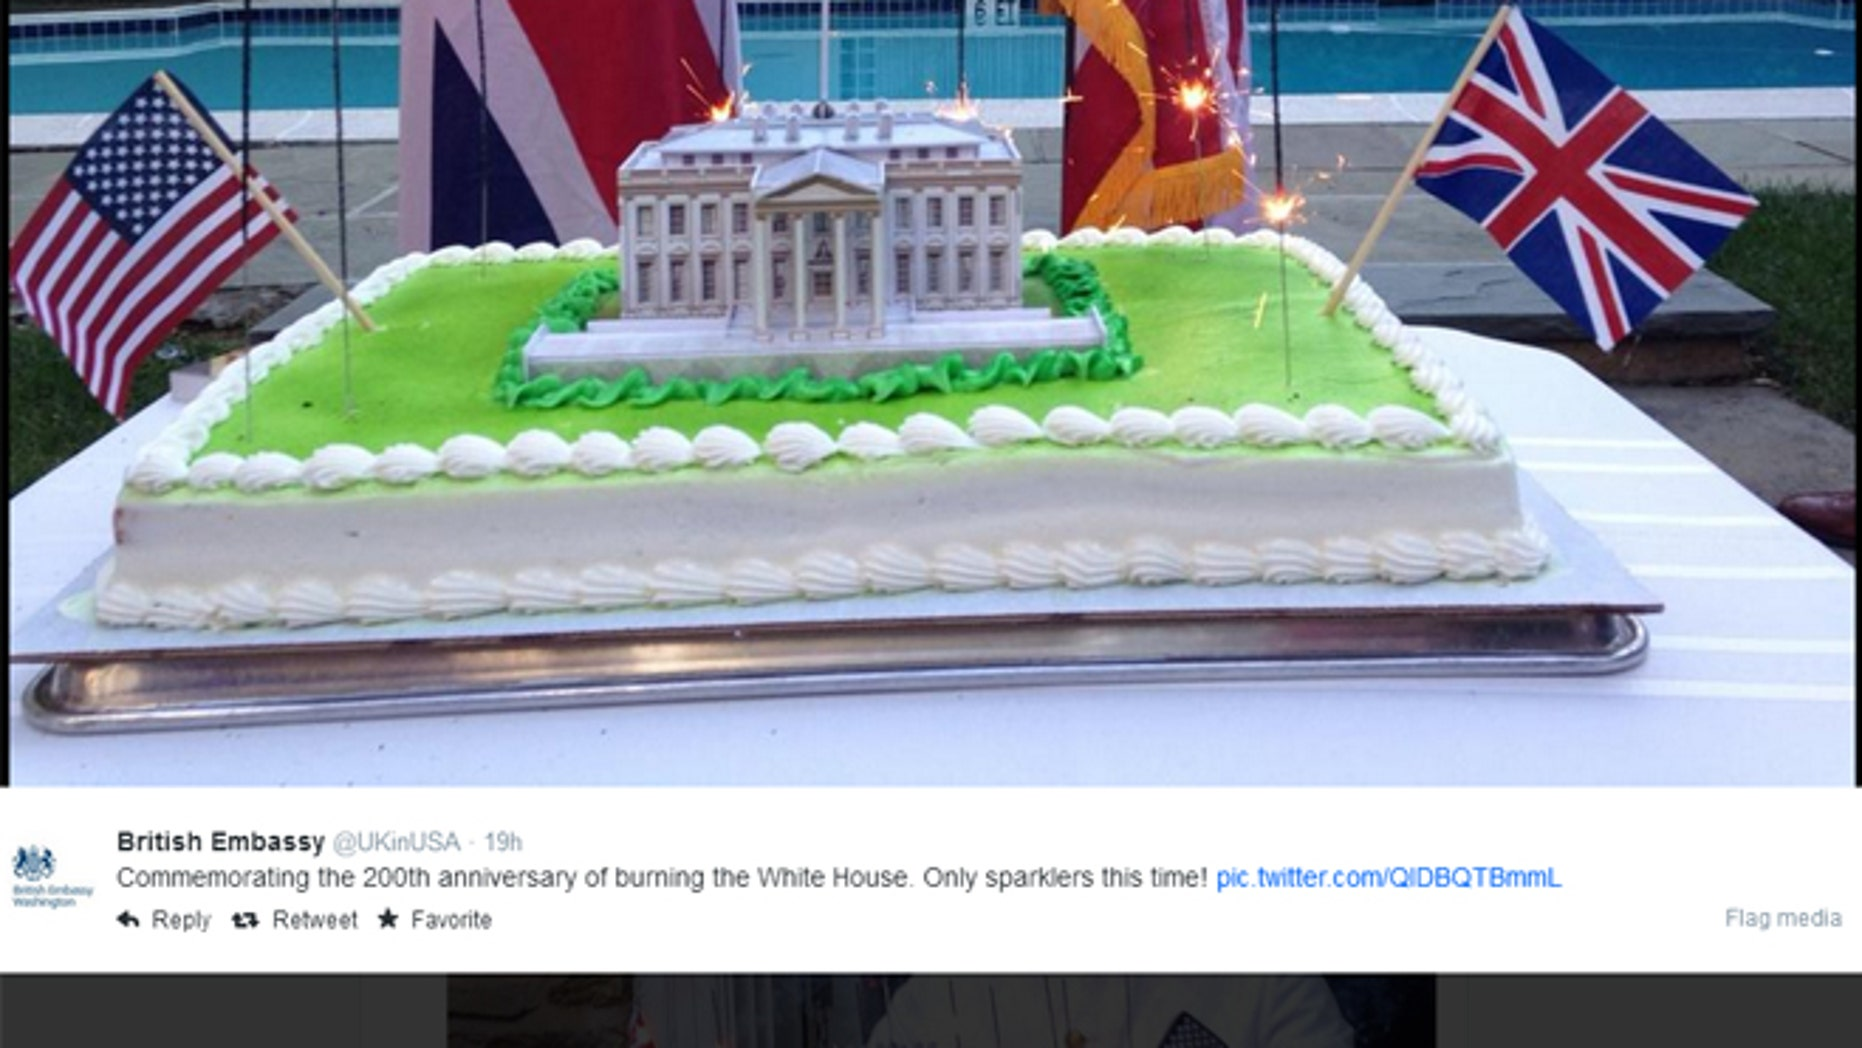 The British Embassy apologized for tweeting the image above.